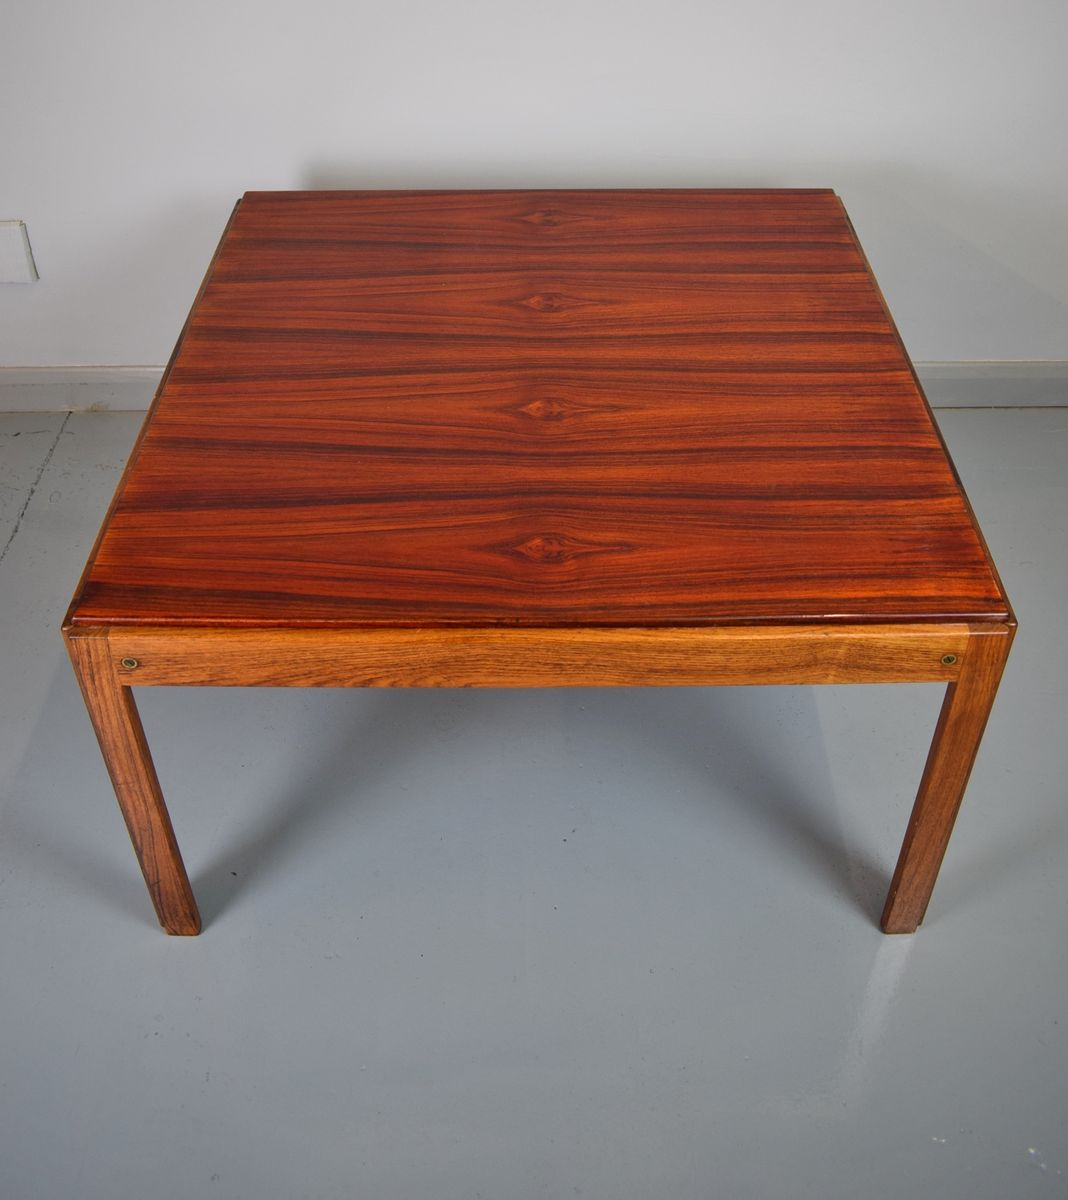 Danish Rosewood Coffee Table By Illum Wikkelso For Silkeborg 1960s For Sale At Pamono